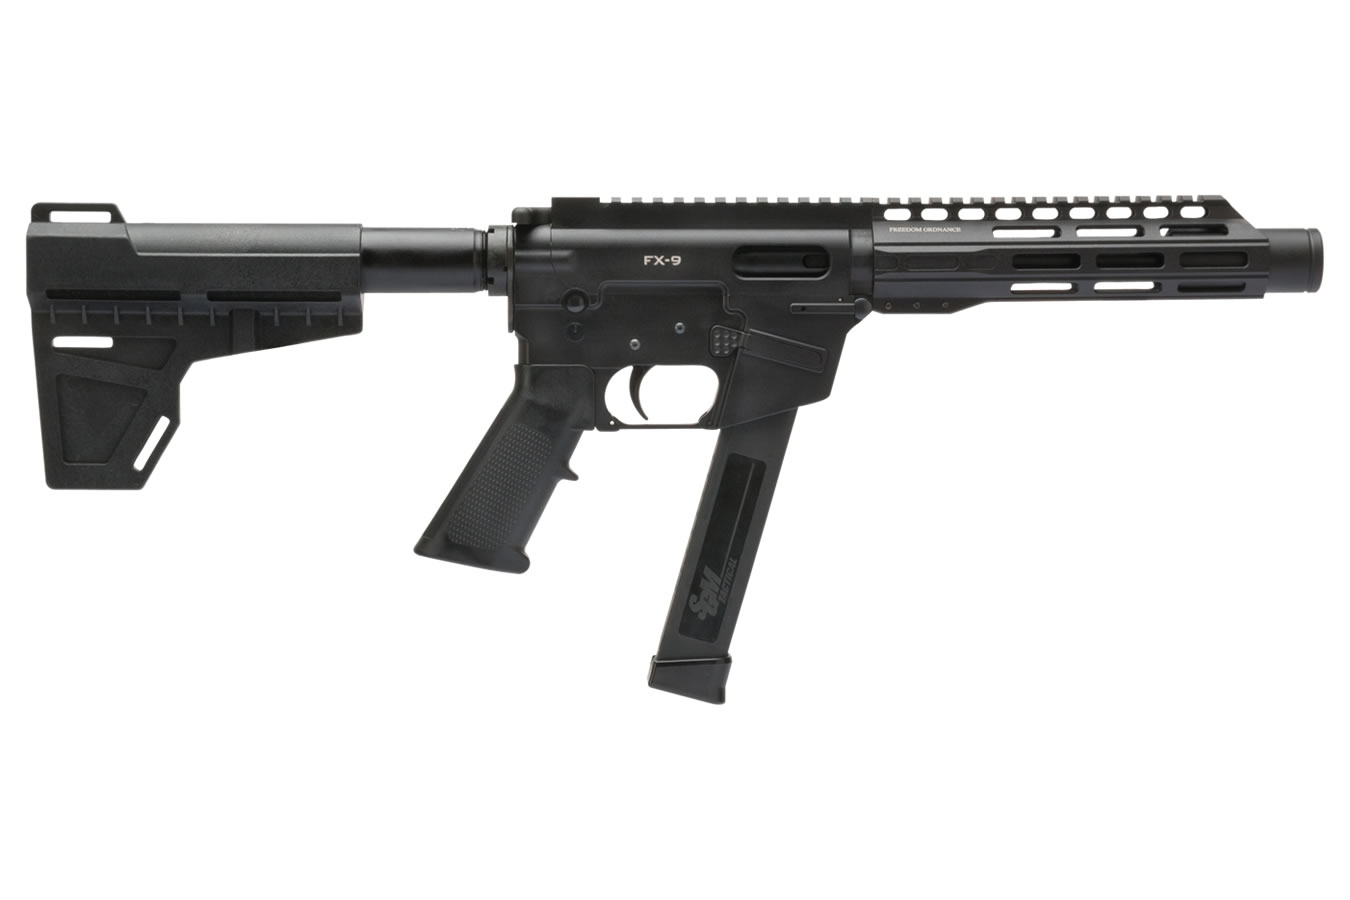 No. 33 Best Selling: FREEDOM ORDNANCE FX-9 9MM AR PISTOL 8.25 / SHOCKWAVE BLADE STOCK